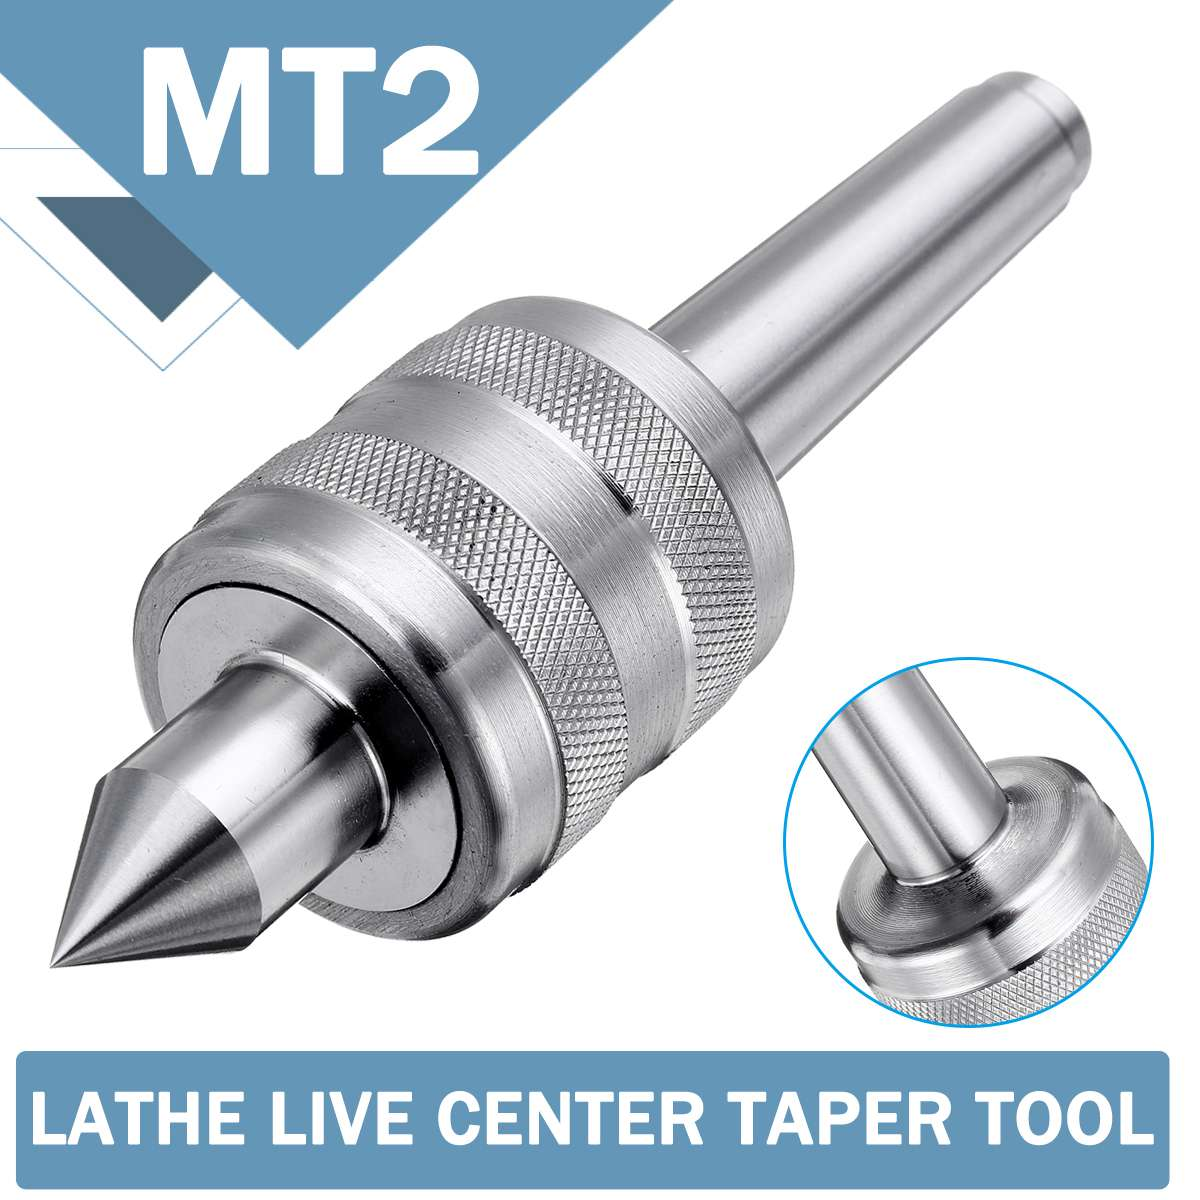 MT2 0.001 Accuracy Precisions Steel Lathe Live Center Taper Tool Triple Bearing For CNC Cutter Lathe Tool For Metal Wood Lathe